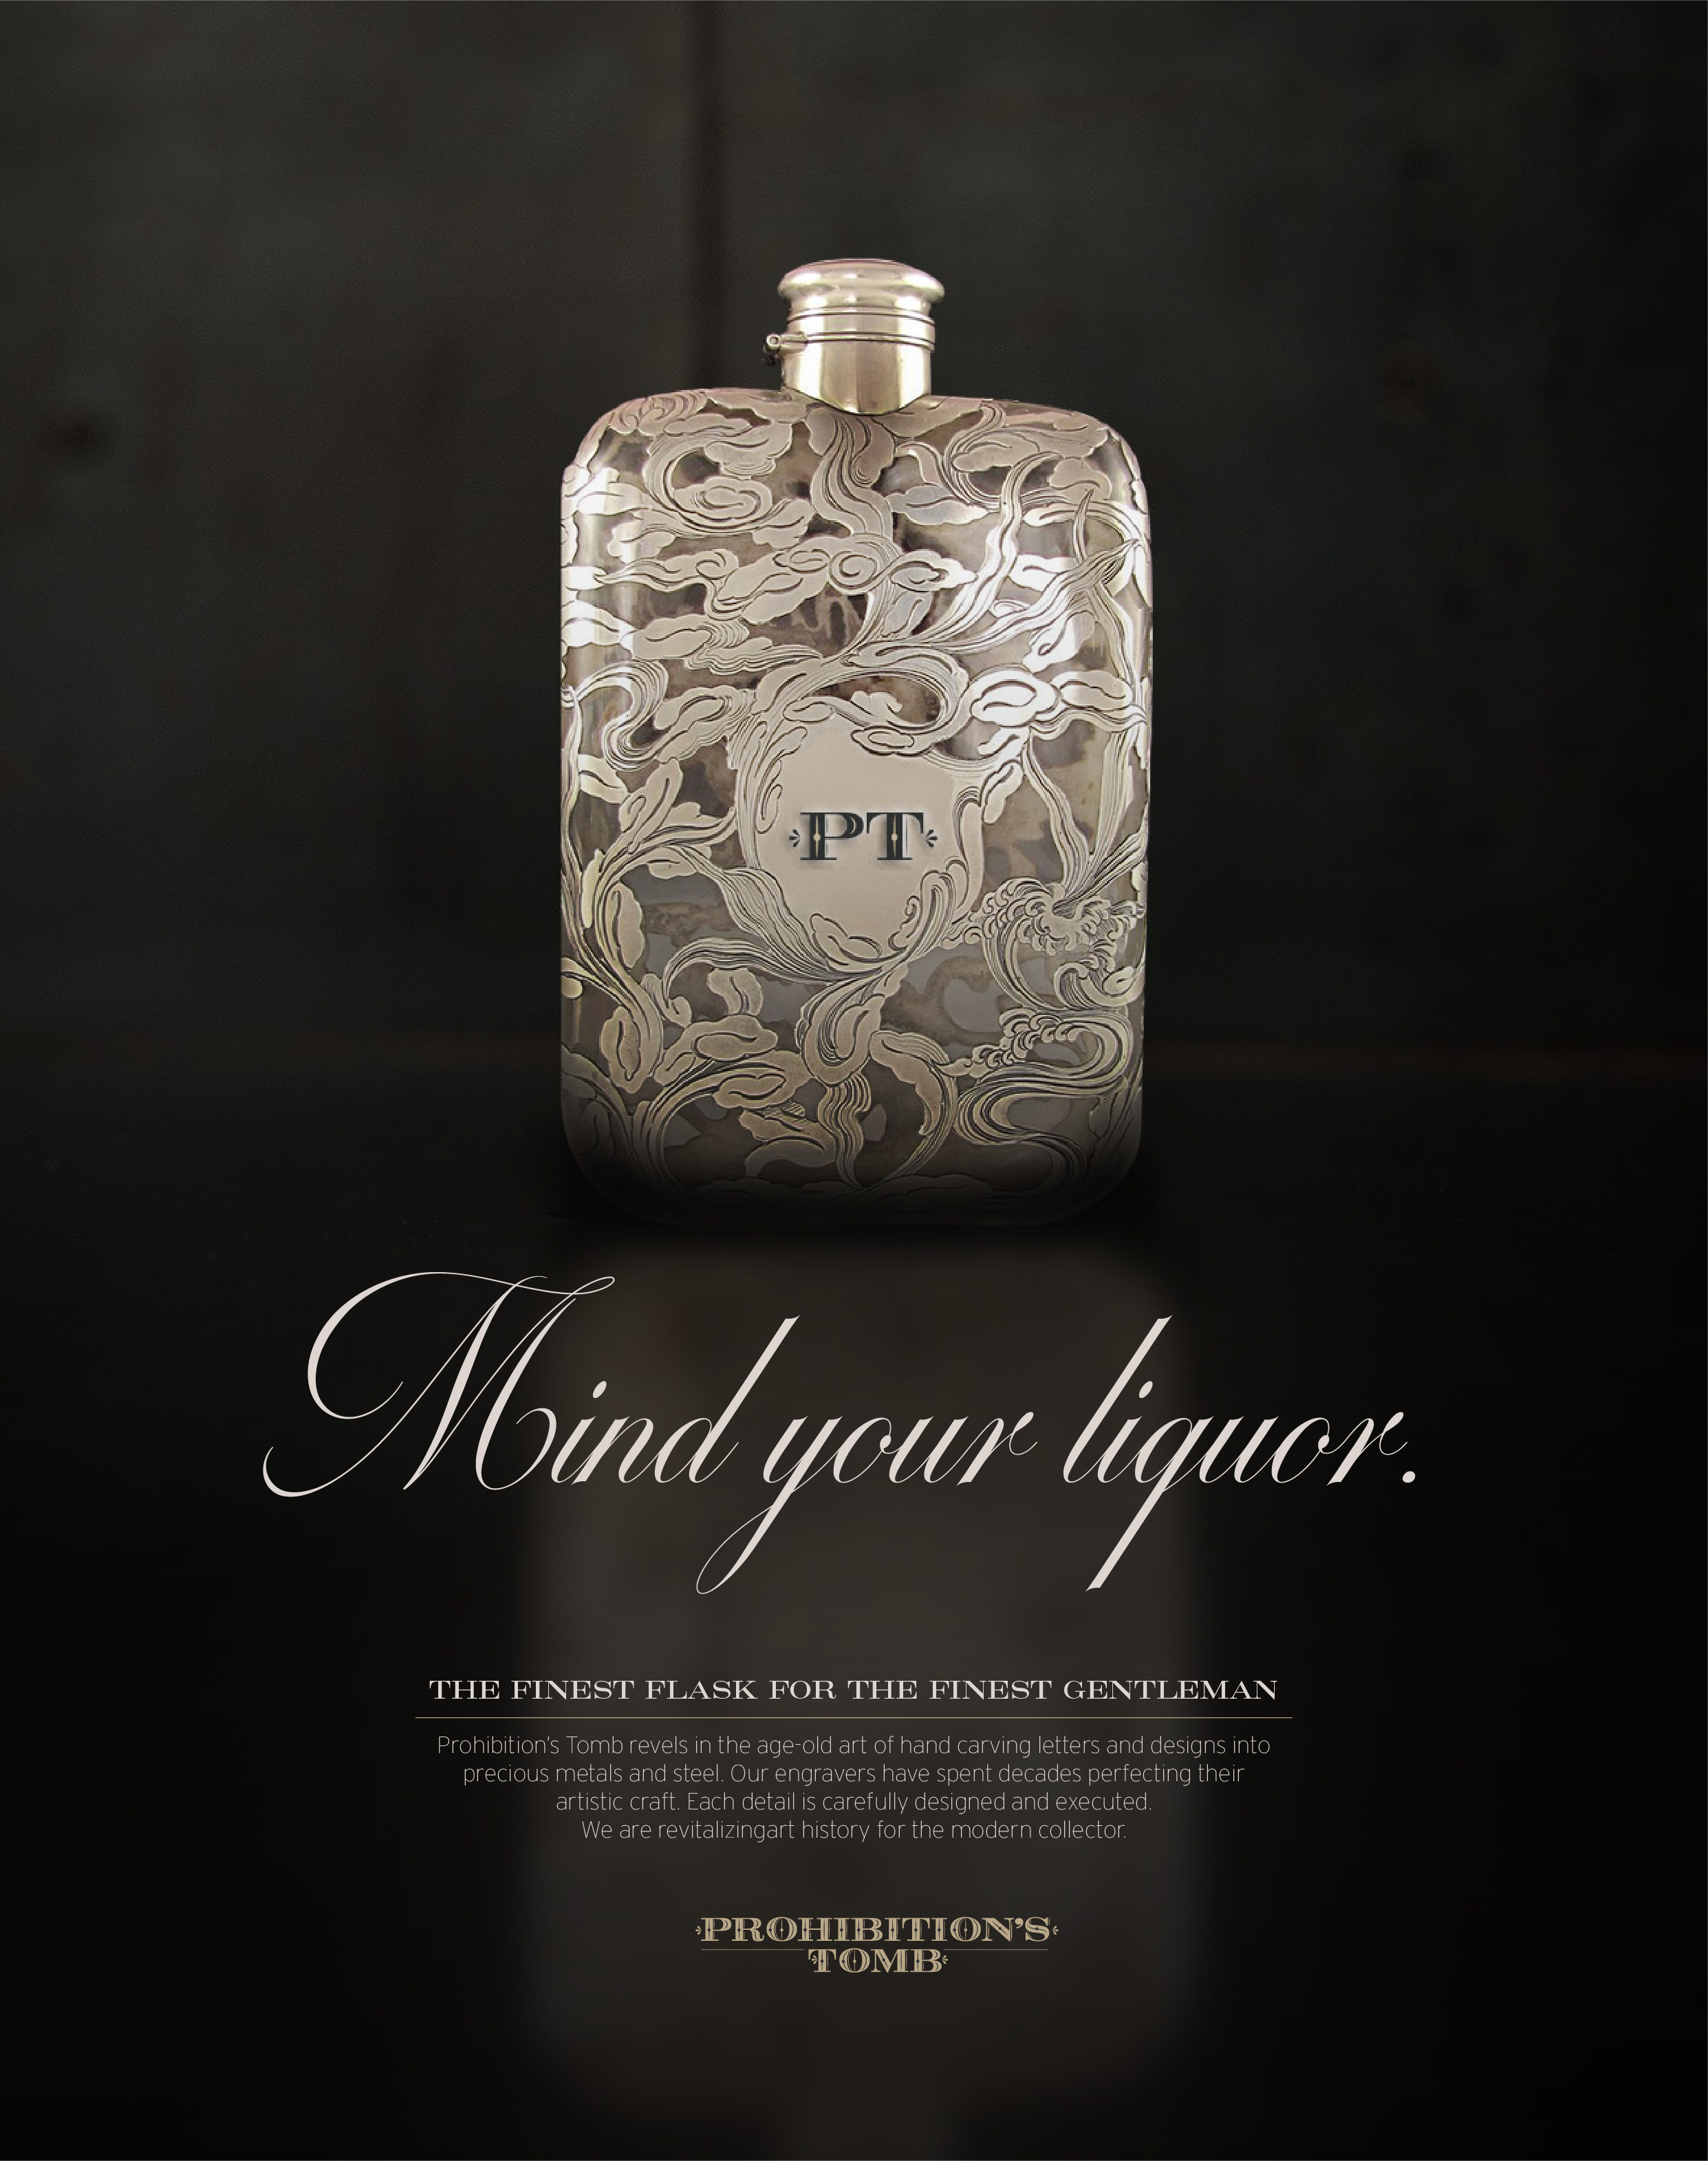 Advertising & Merchandising - The advertisements for Prohibition's Tomb are beauty shots of the artisanal flasks. Through its revitalization of the art nouveau era, the ads place emphasis on the craftsmanship and artistic detailing.